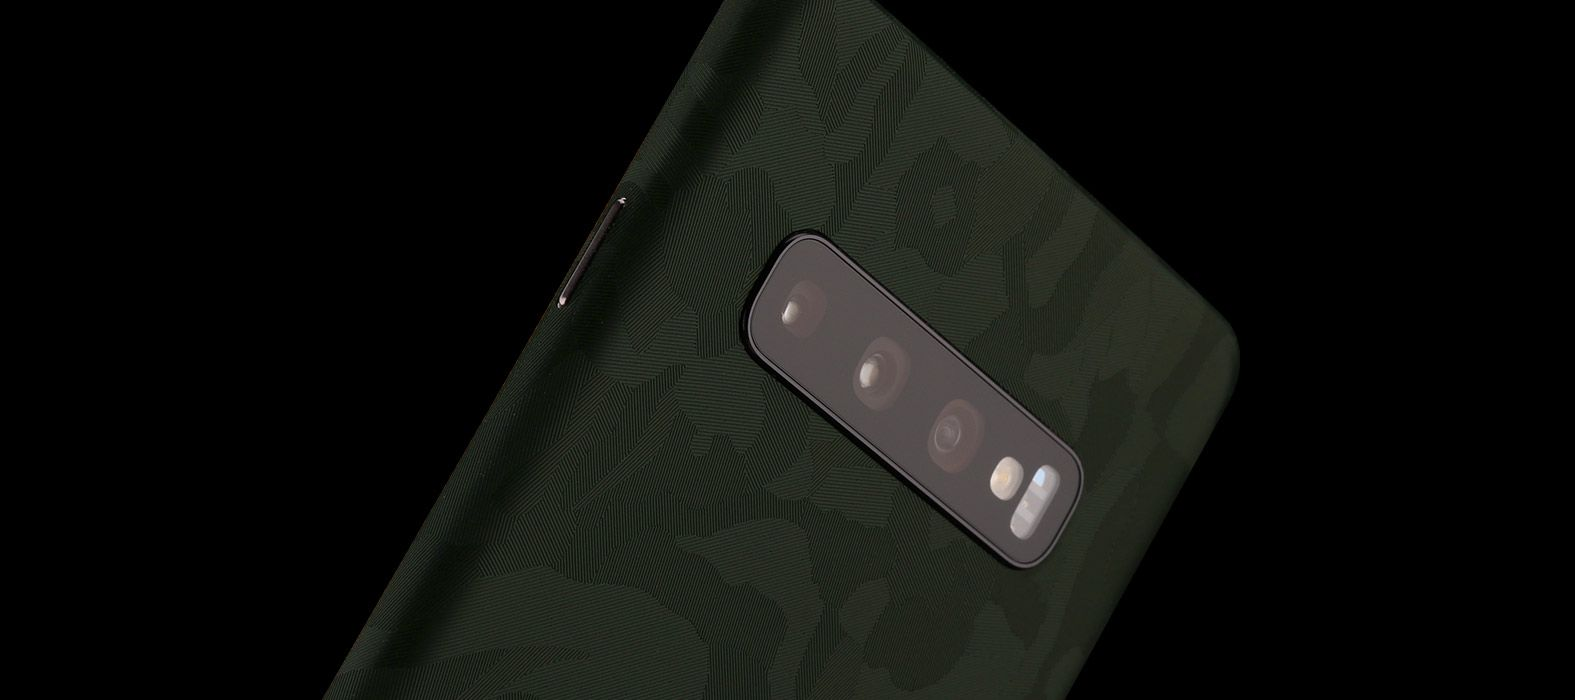 Galaxy S10 Plus Green Camo Skins